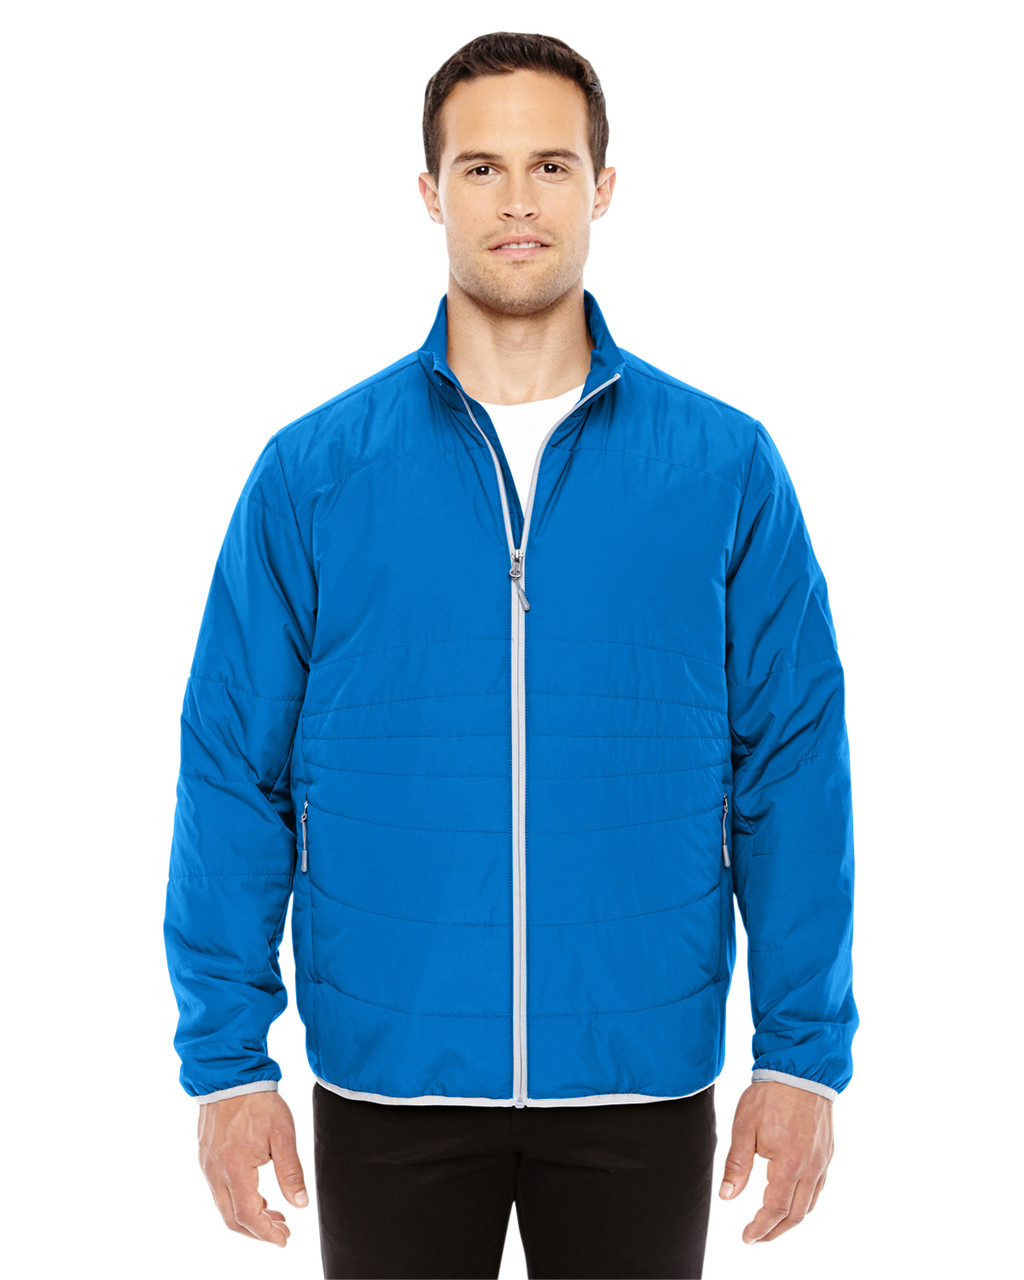 Nau Blue/Plt 88231 North End Men's Resolve Interactive Insulated Packable Jacket | Blankclothing.ca